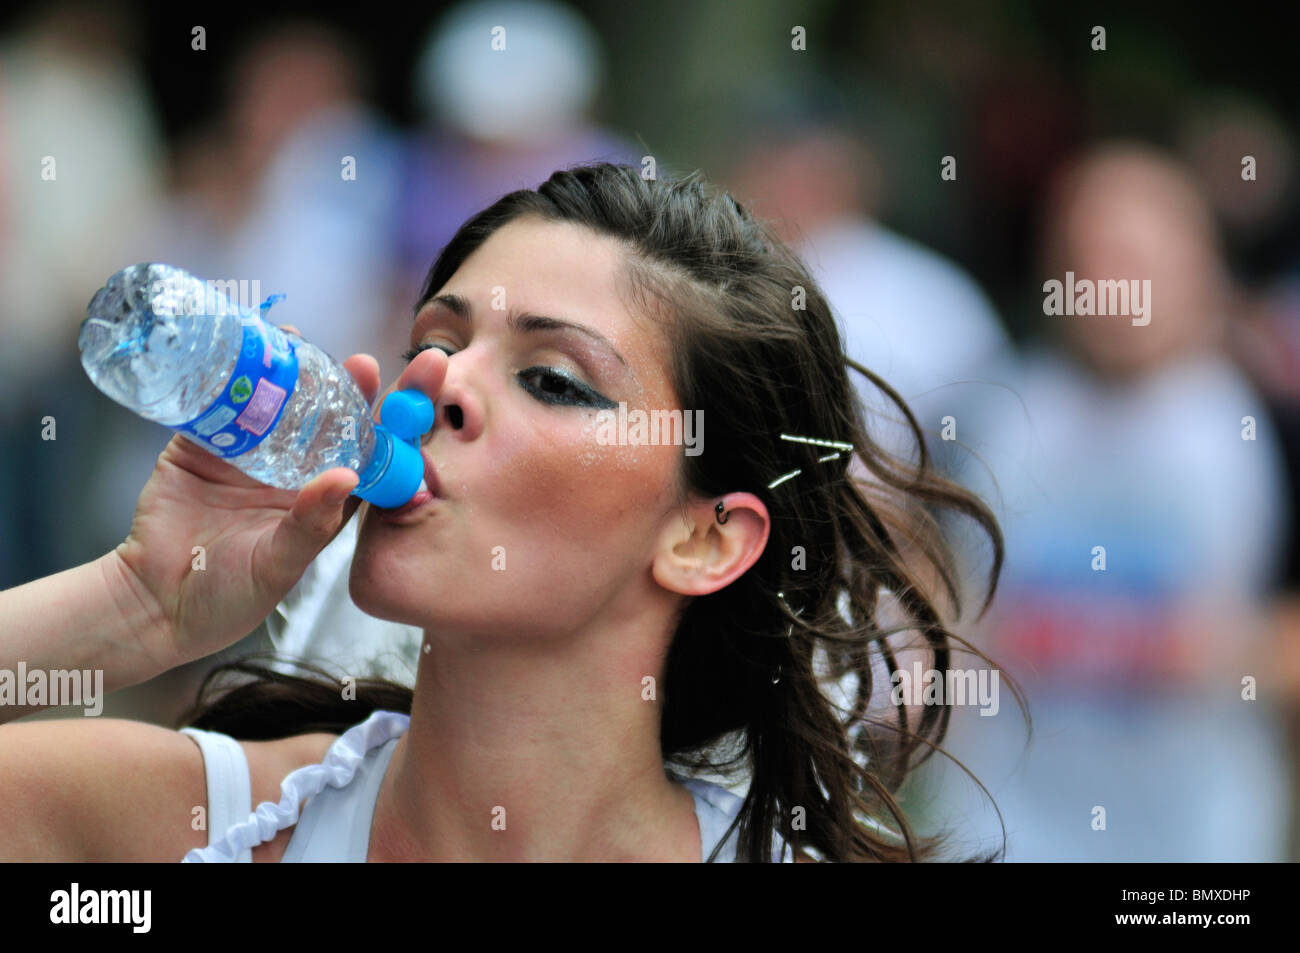 Mass participation running event competitor drinking water, London, United Kingdom - Stock Image